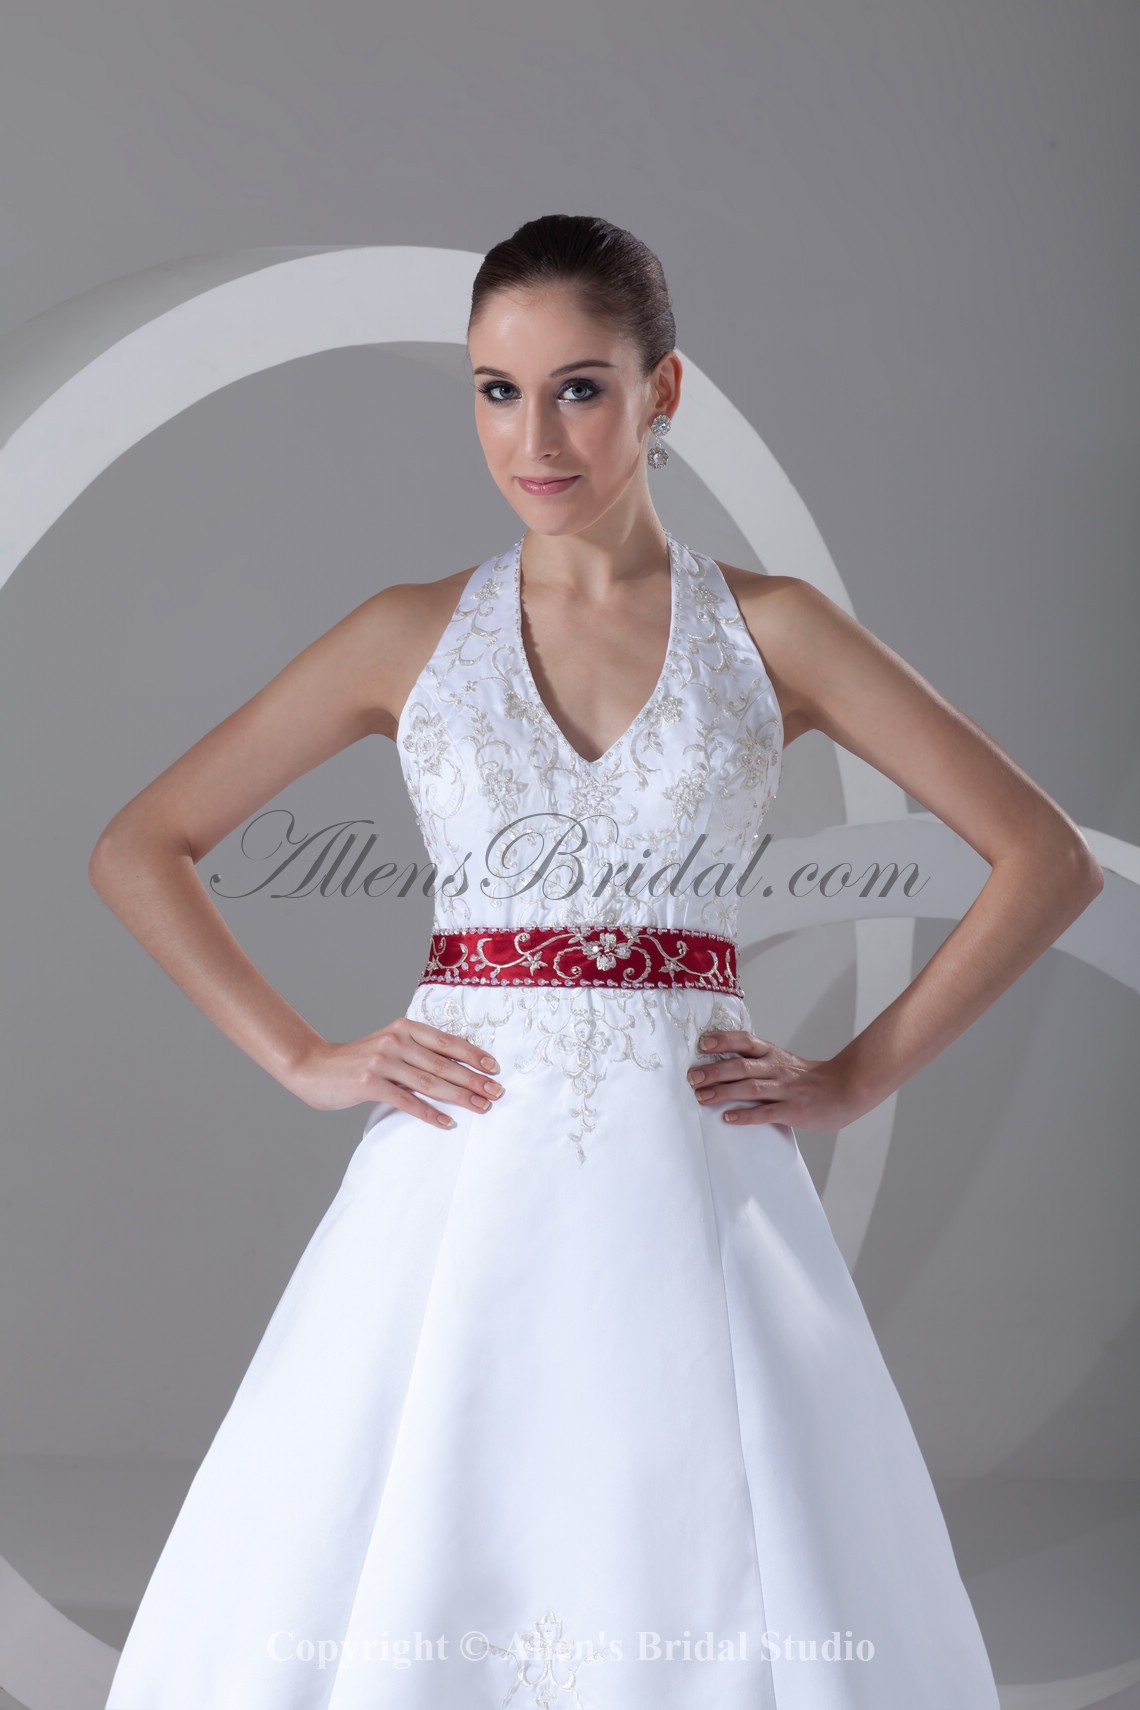 /905-7253/satin-halter-neckline-chapel-train-a-line-embroidered-wedding-dress.jpg